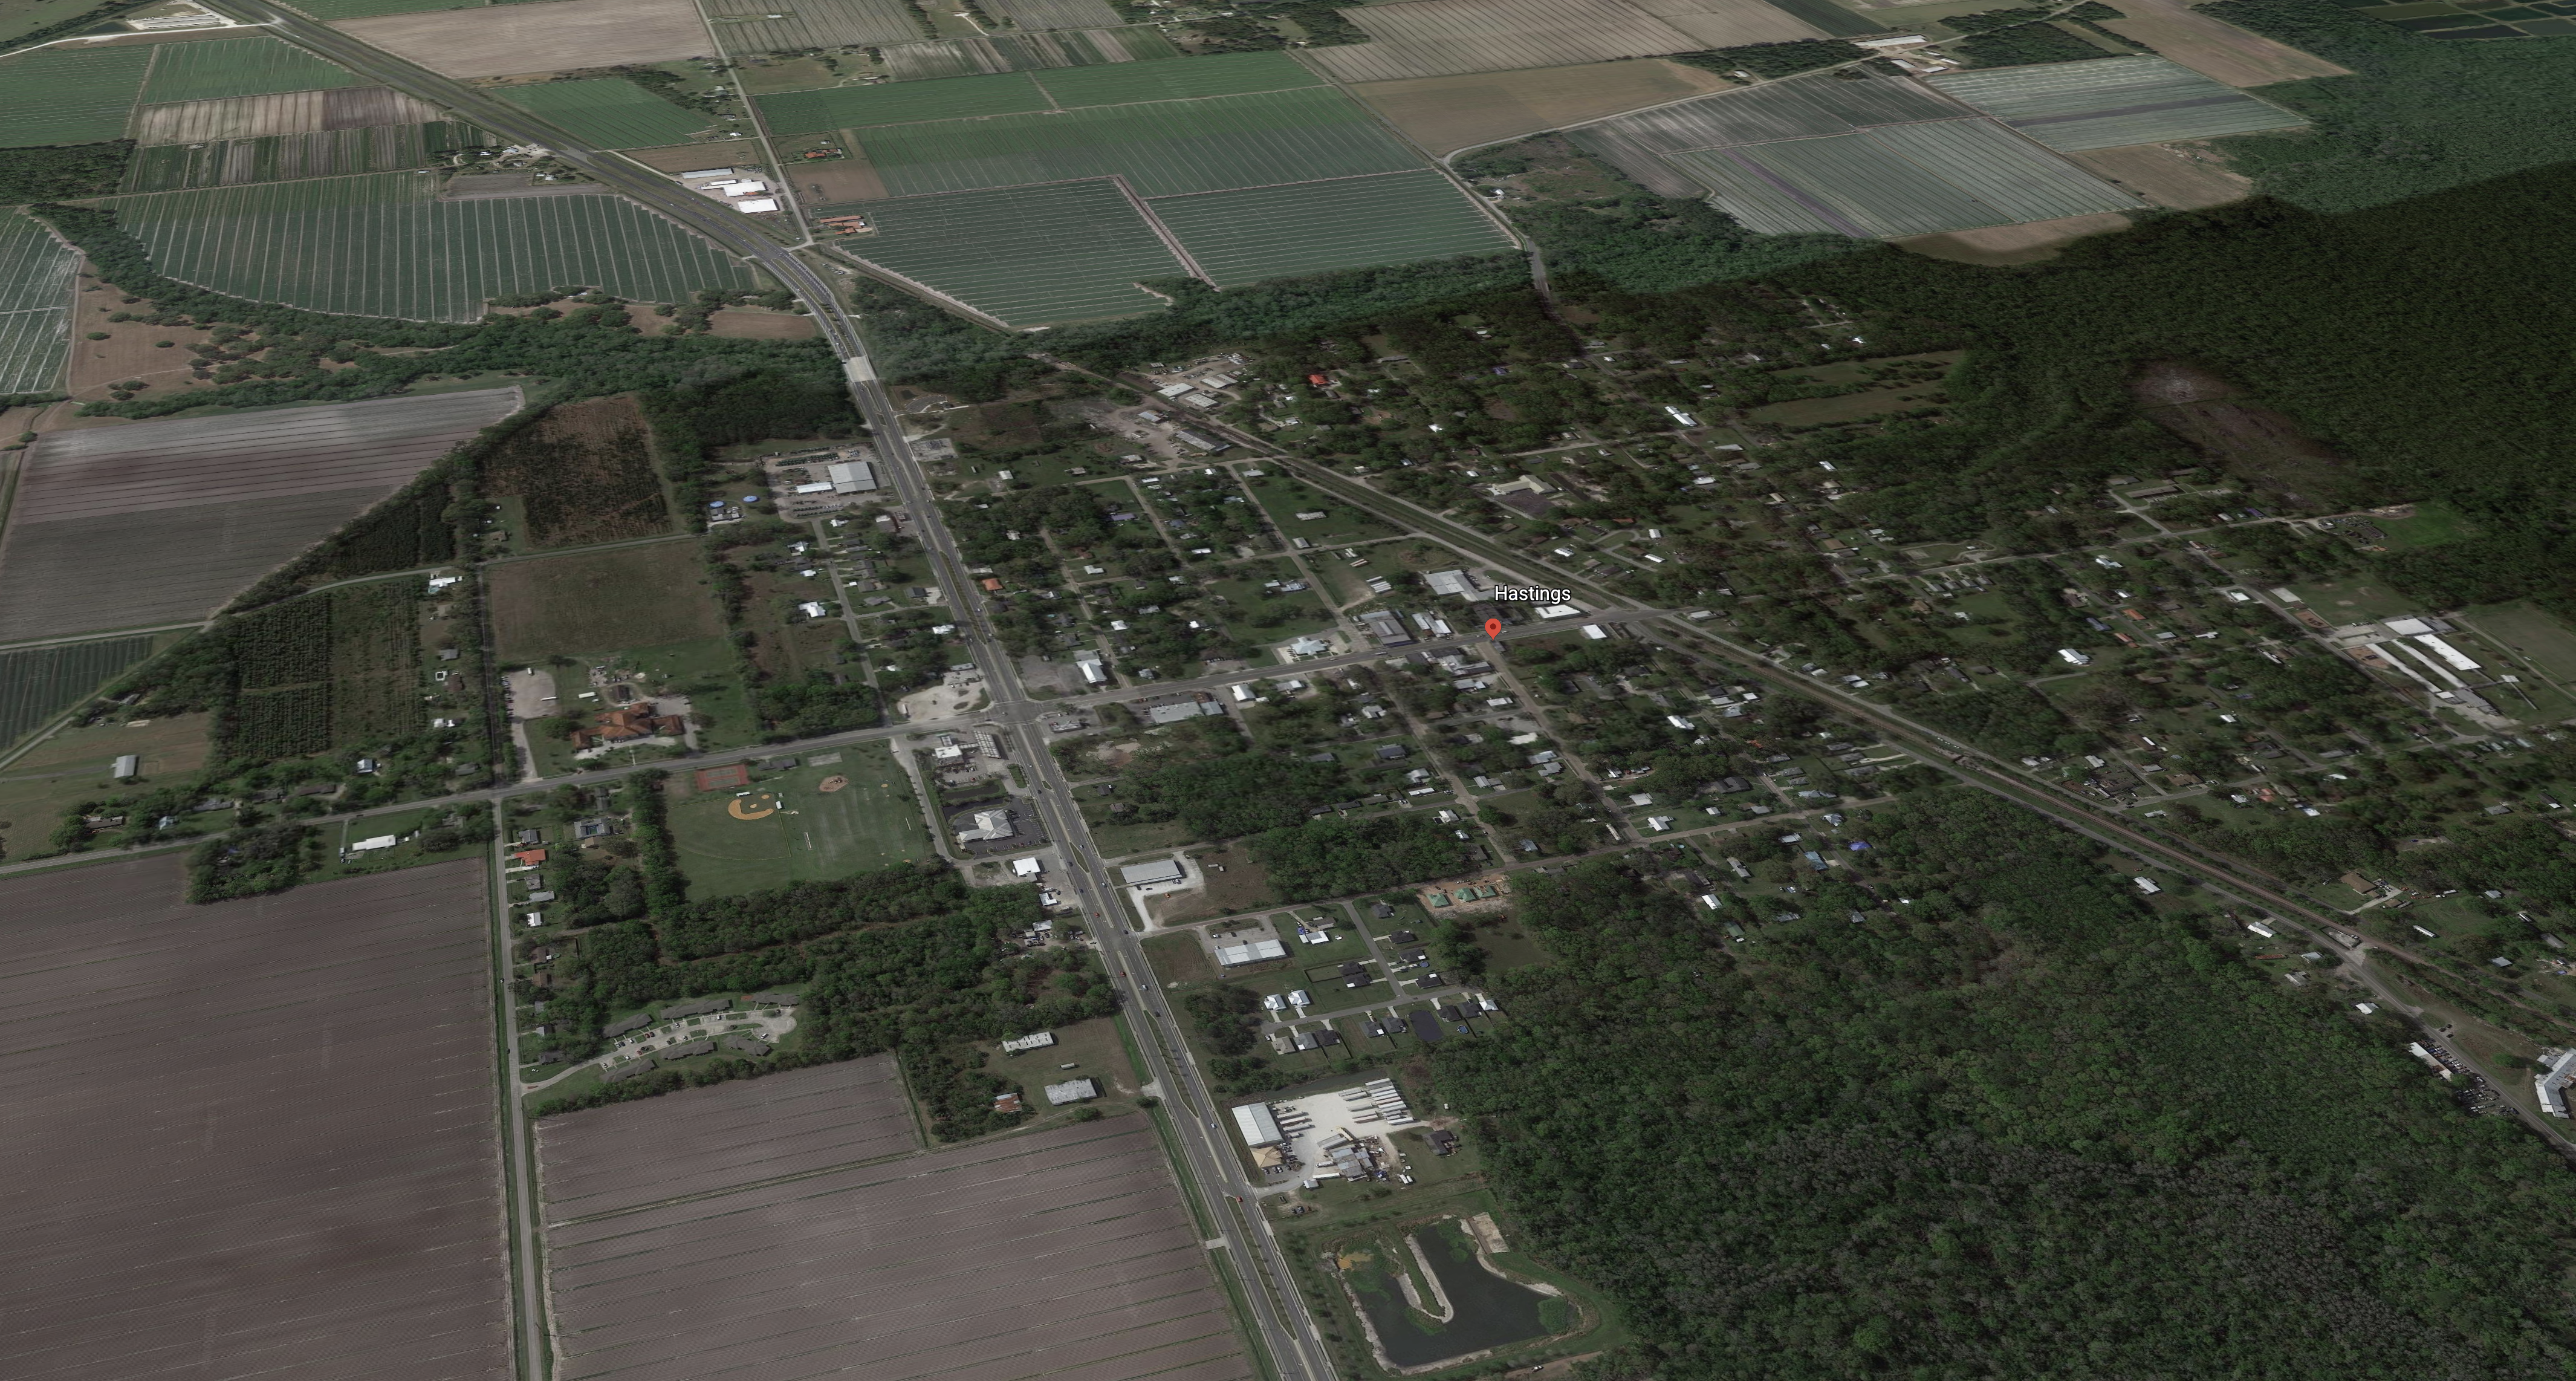 An aerial map of the Town of Hastings, showing large amounts of trees and land